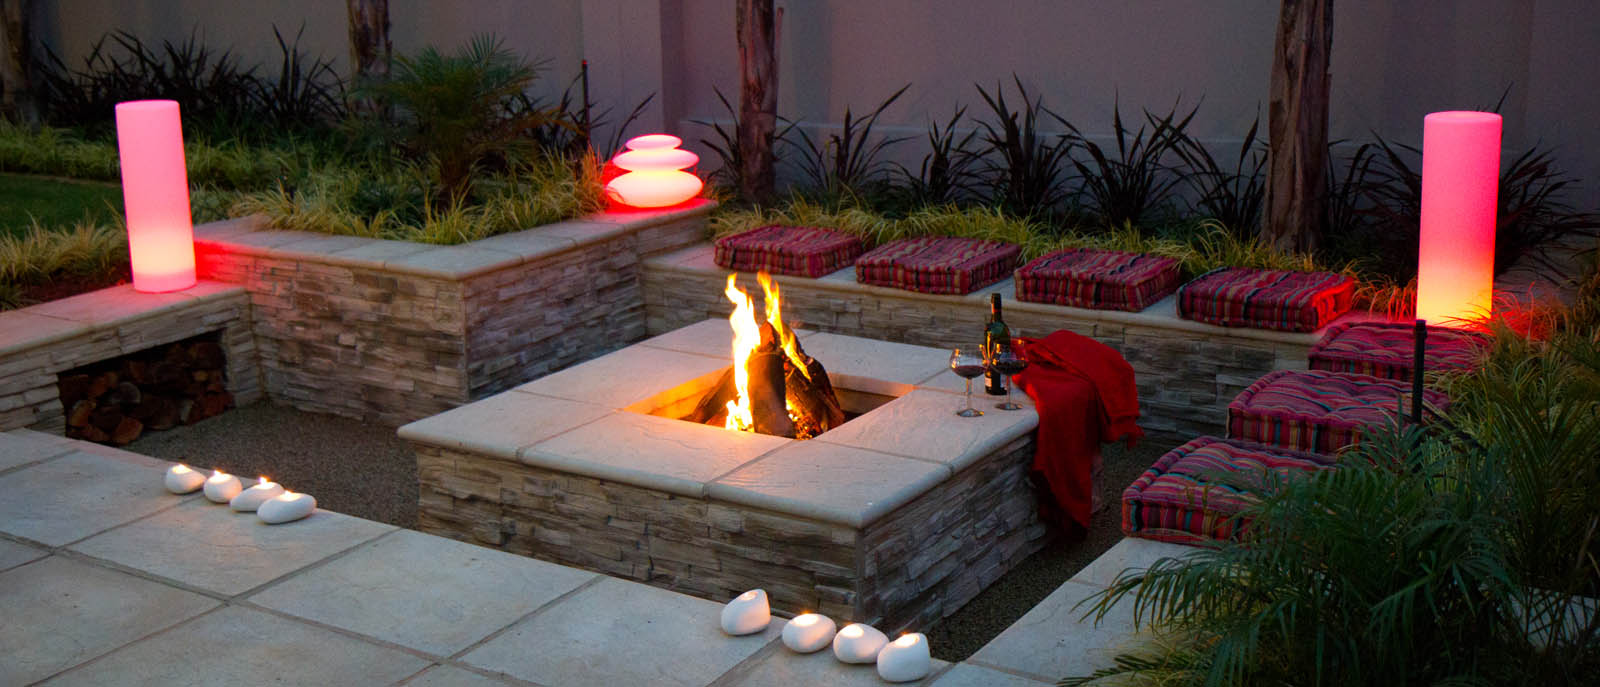 Ideas And Inspiration – Aztec Paving